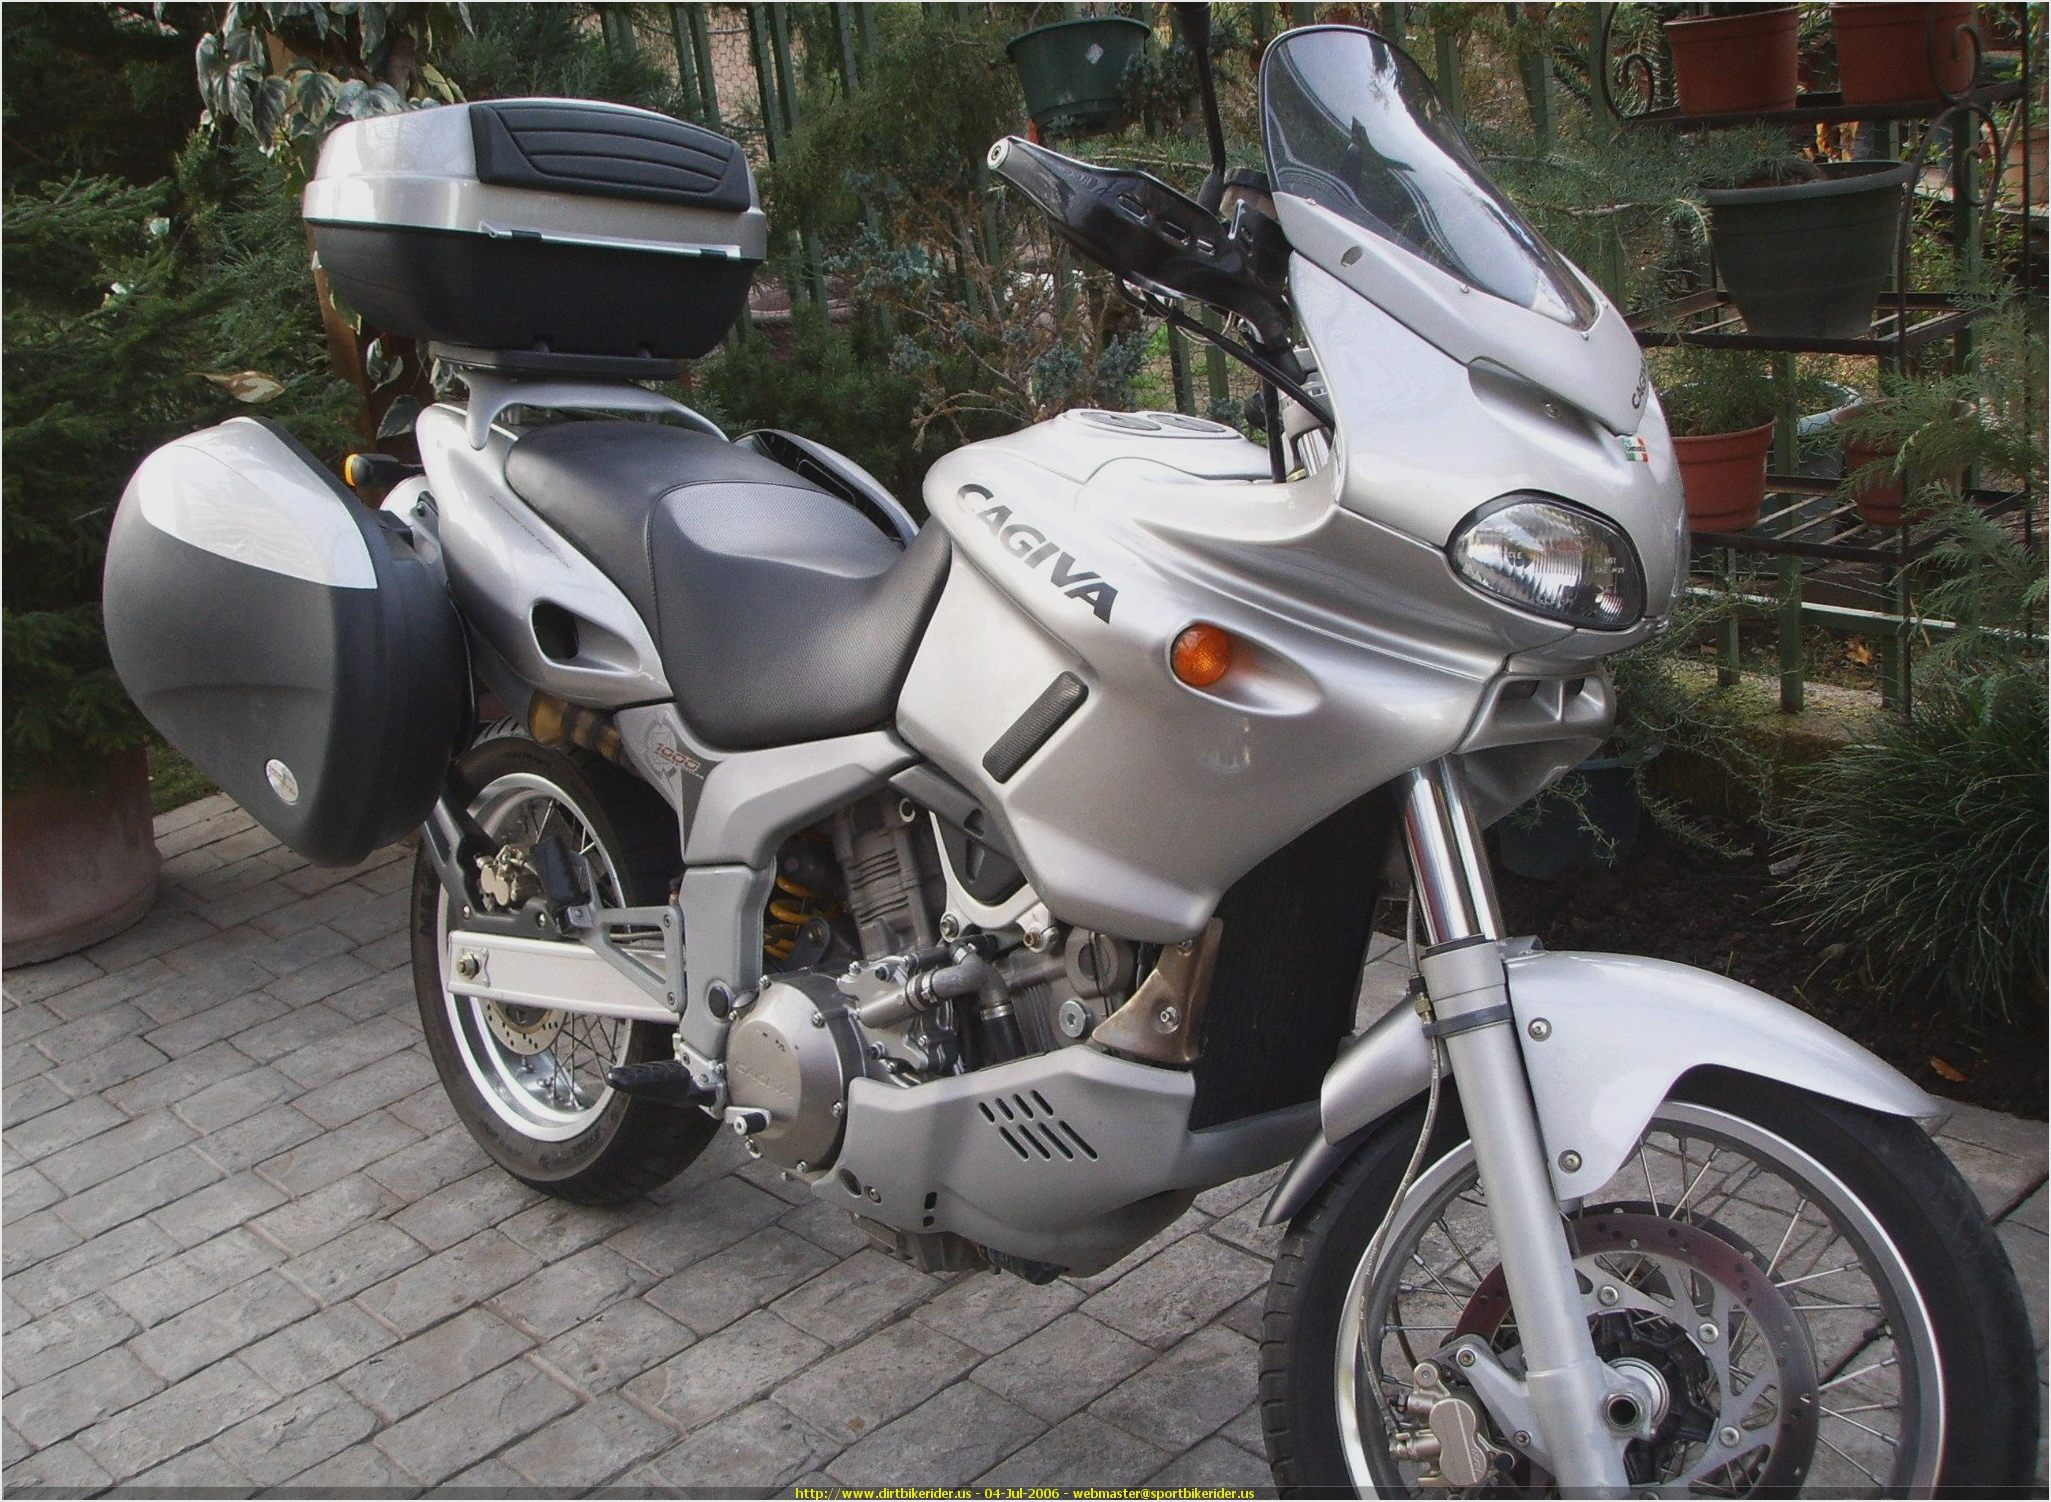 Cagiva Navigator 1000 2002 images #162850